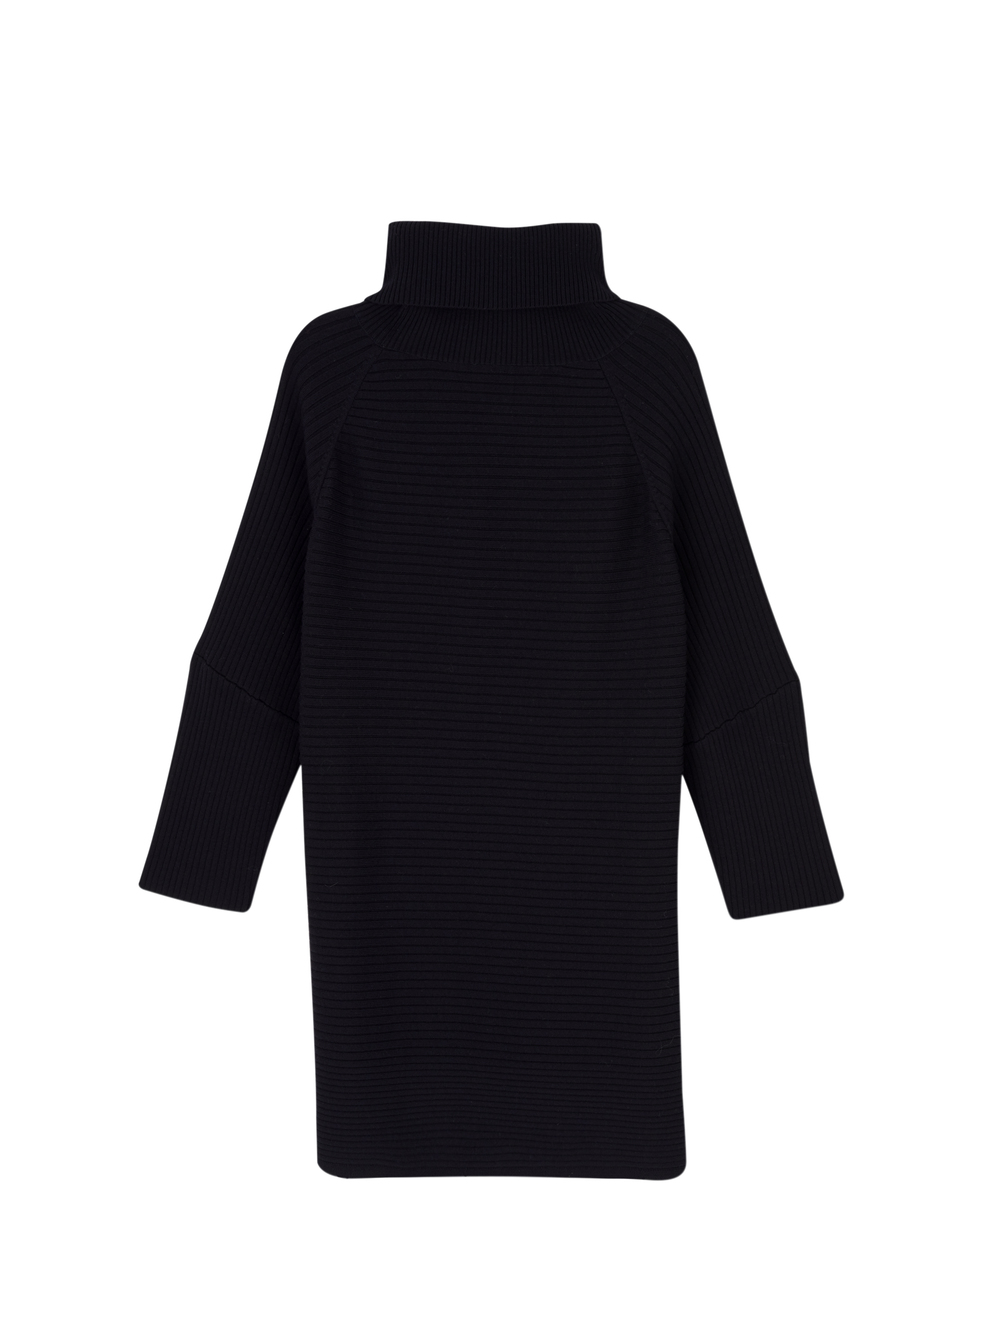 black_knitted_dress_$125.jpg